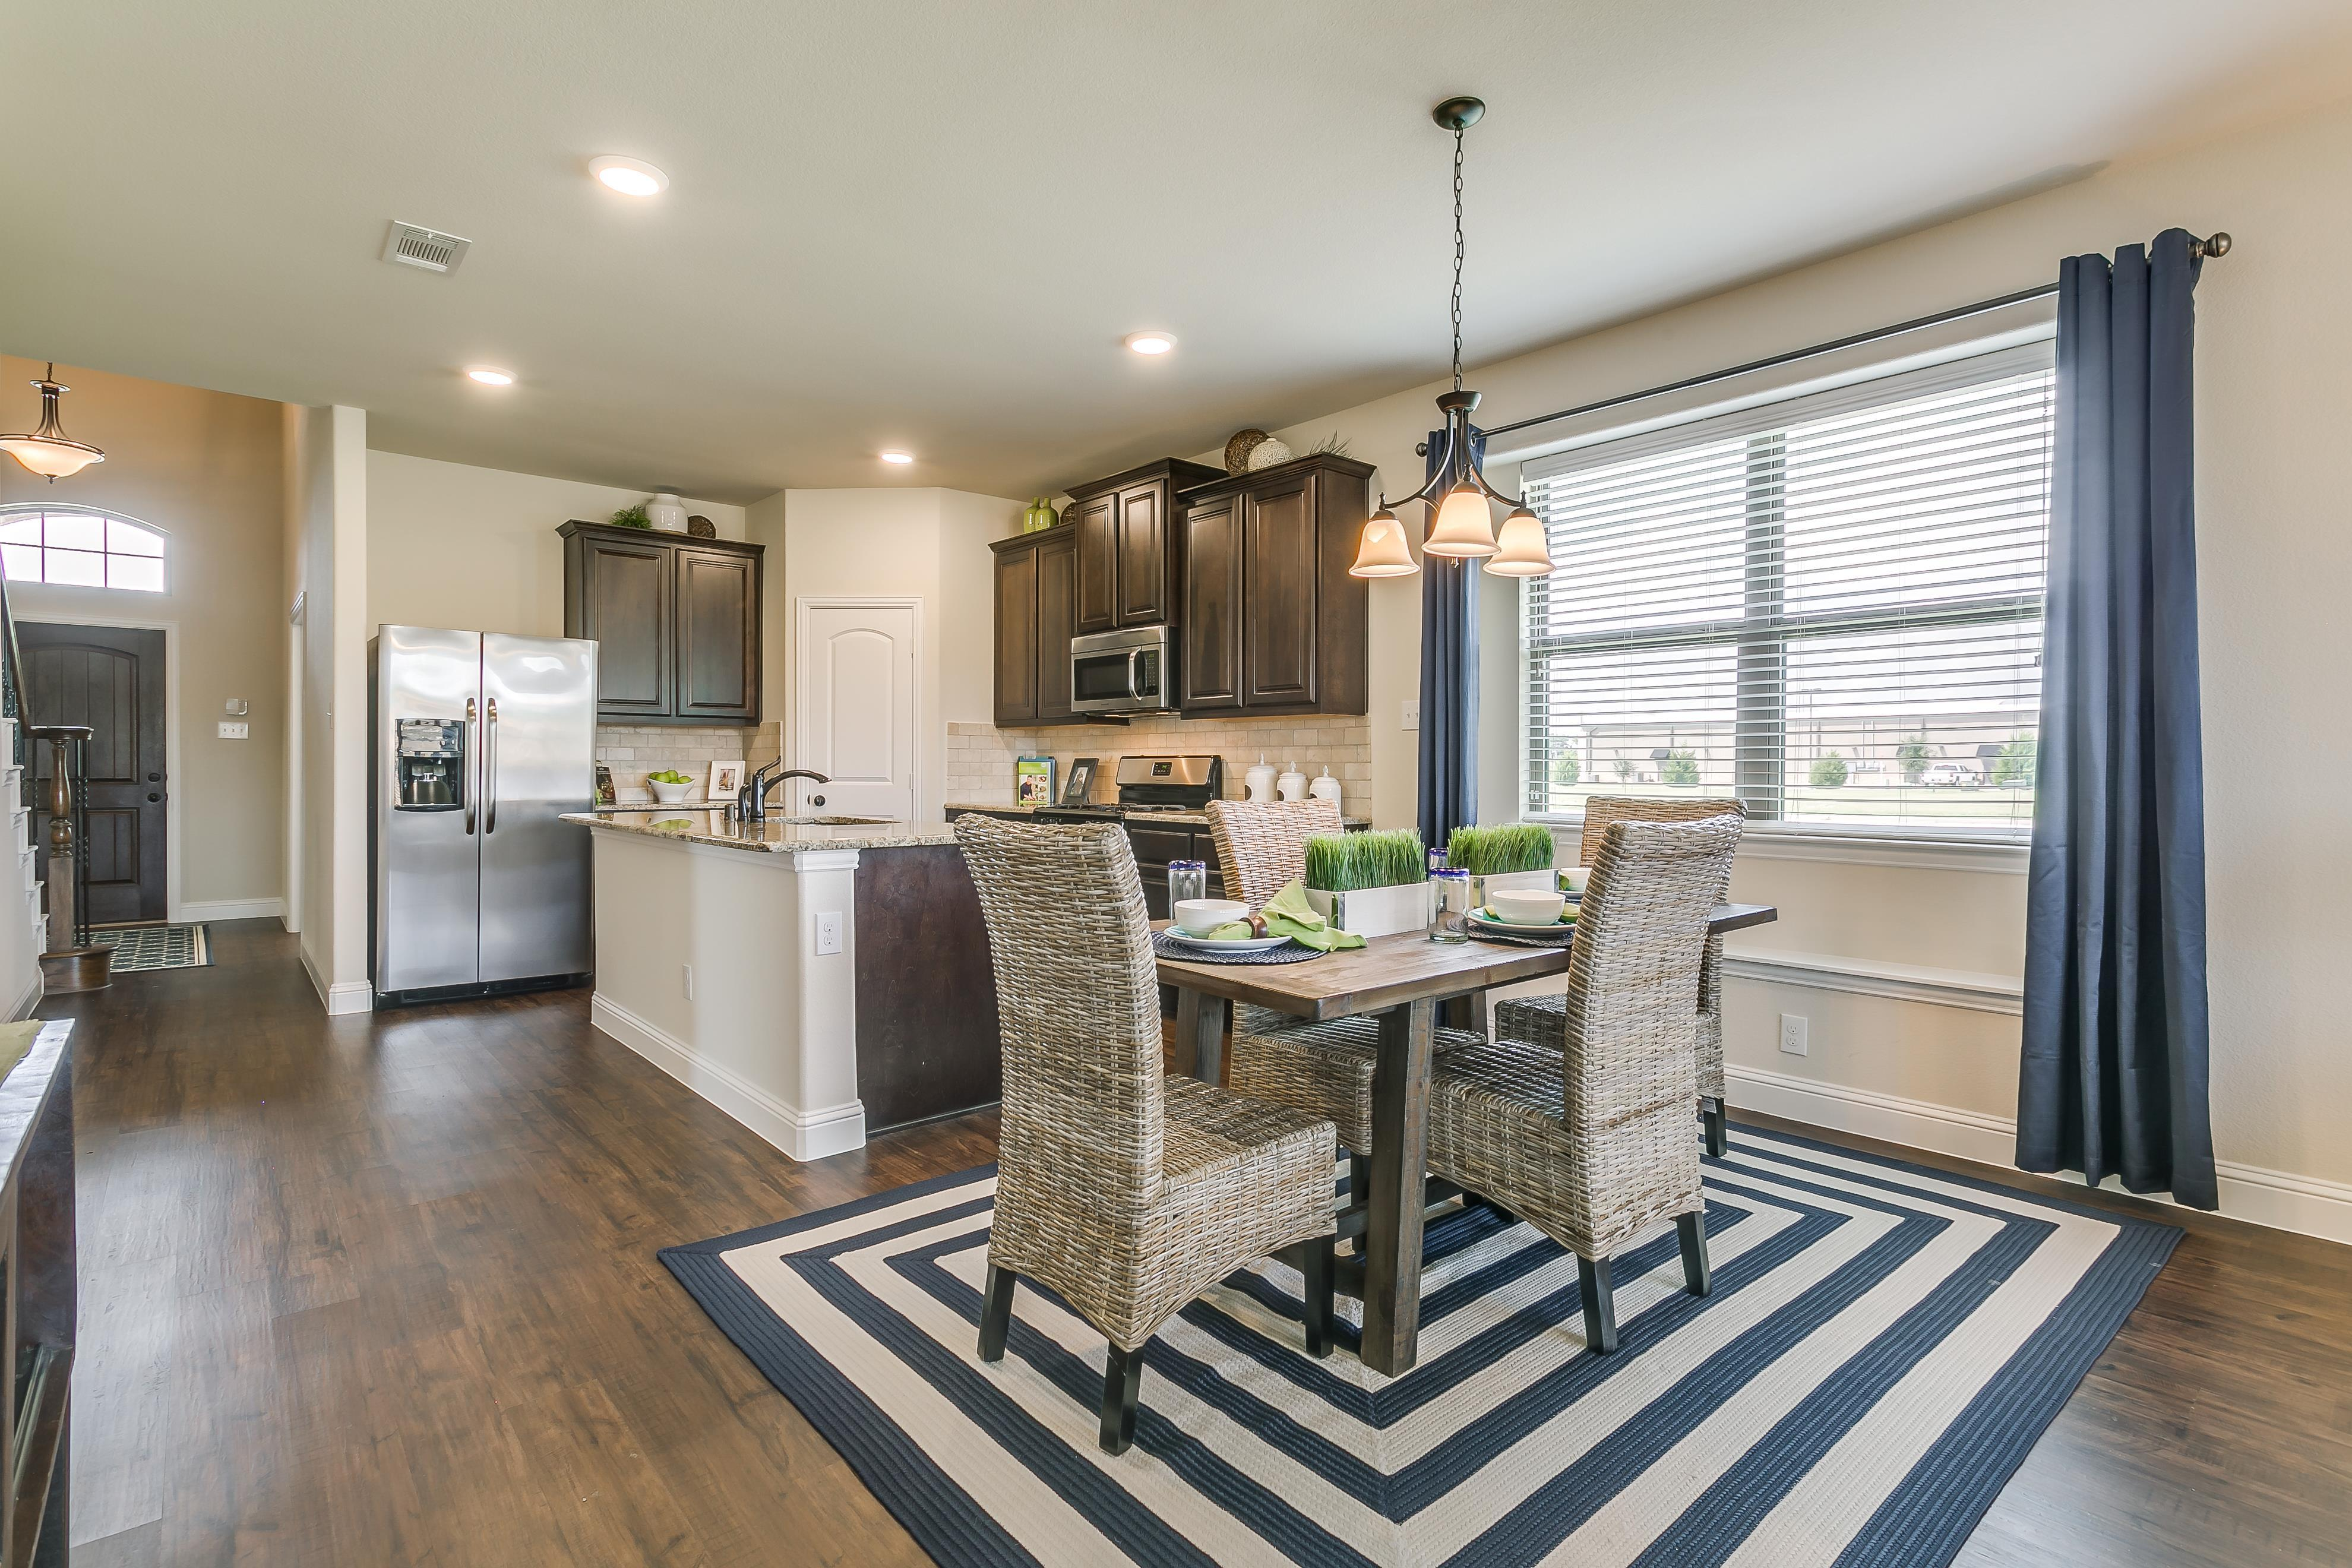 Kitchen featured in the Grand Denmark By Altura Homes in Dallas, TX